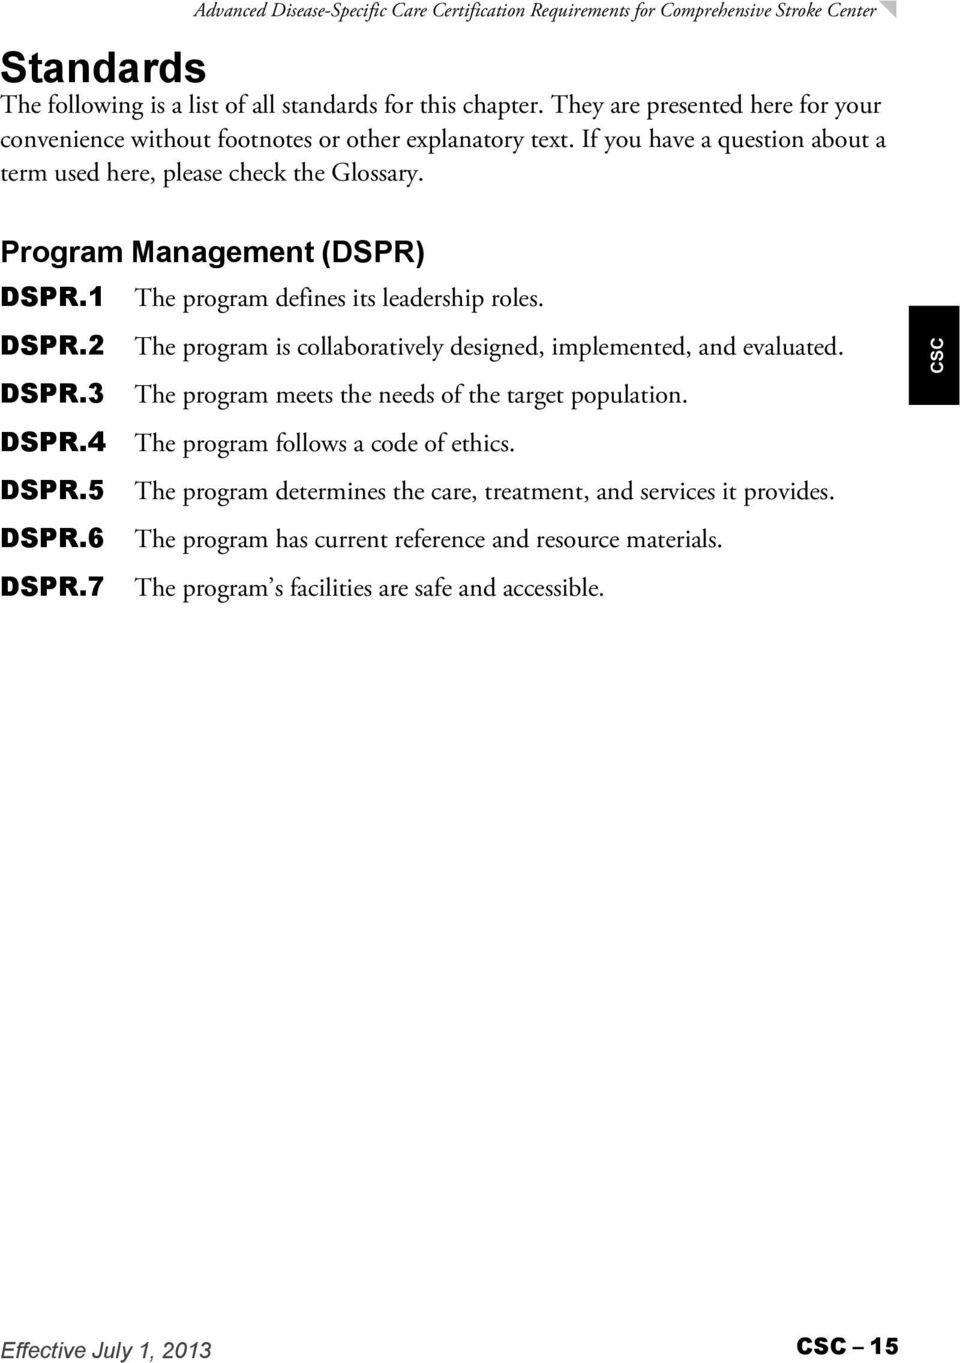 1 The program defines its leadership roles. DSPR.2 The program is collaboratively designed, implemented, and evaluated. DSPR.3 The program meets the needs of the target population. DSPR.4 The program follows a code of ethics.